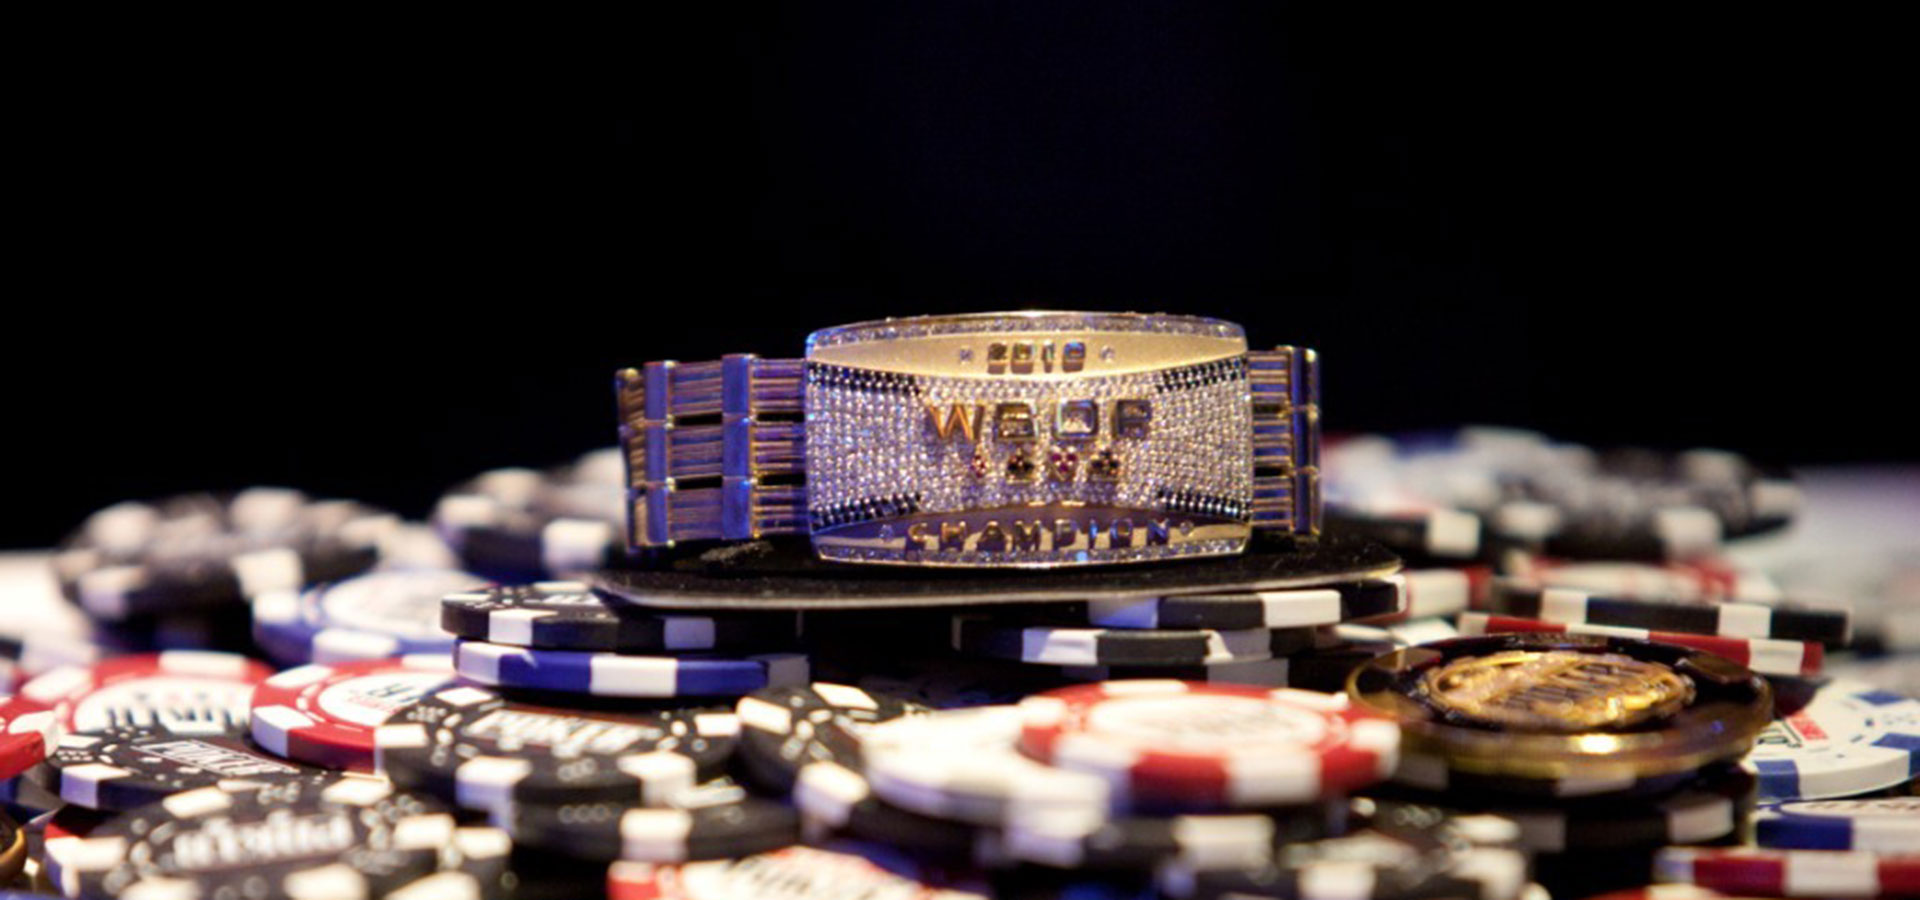 welcome to the world series of poker ...